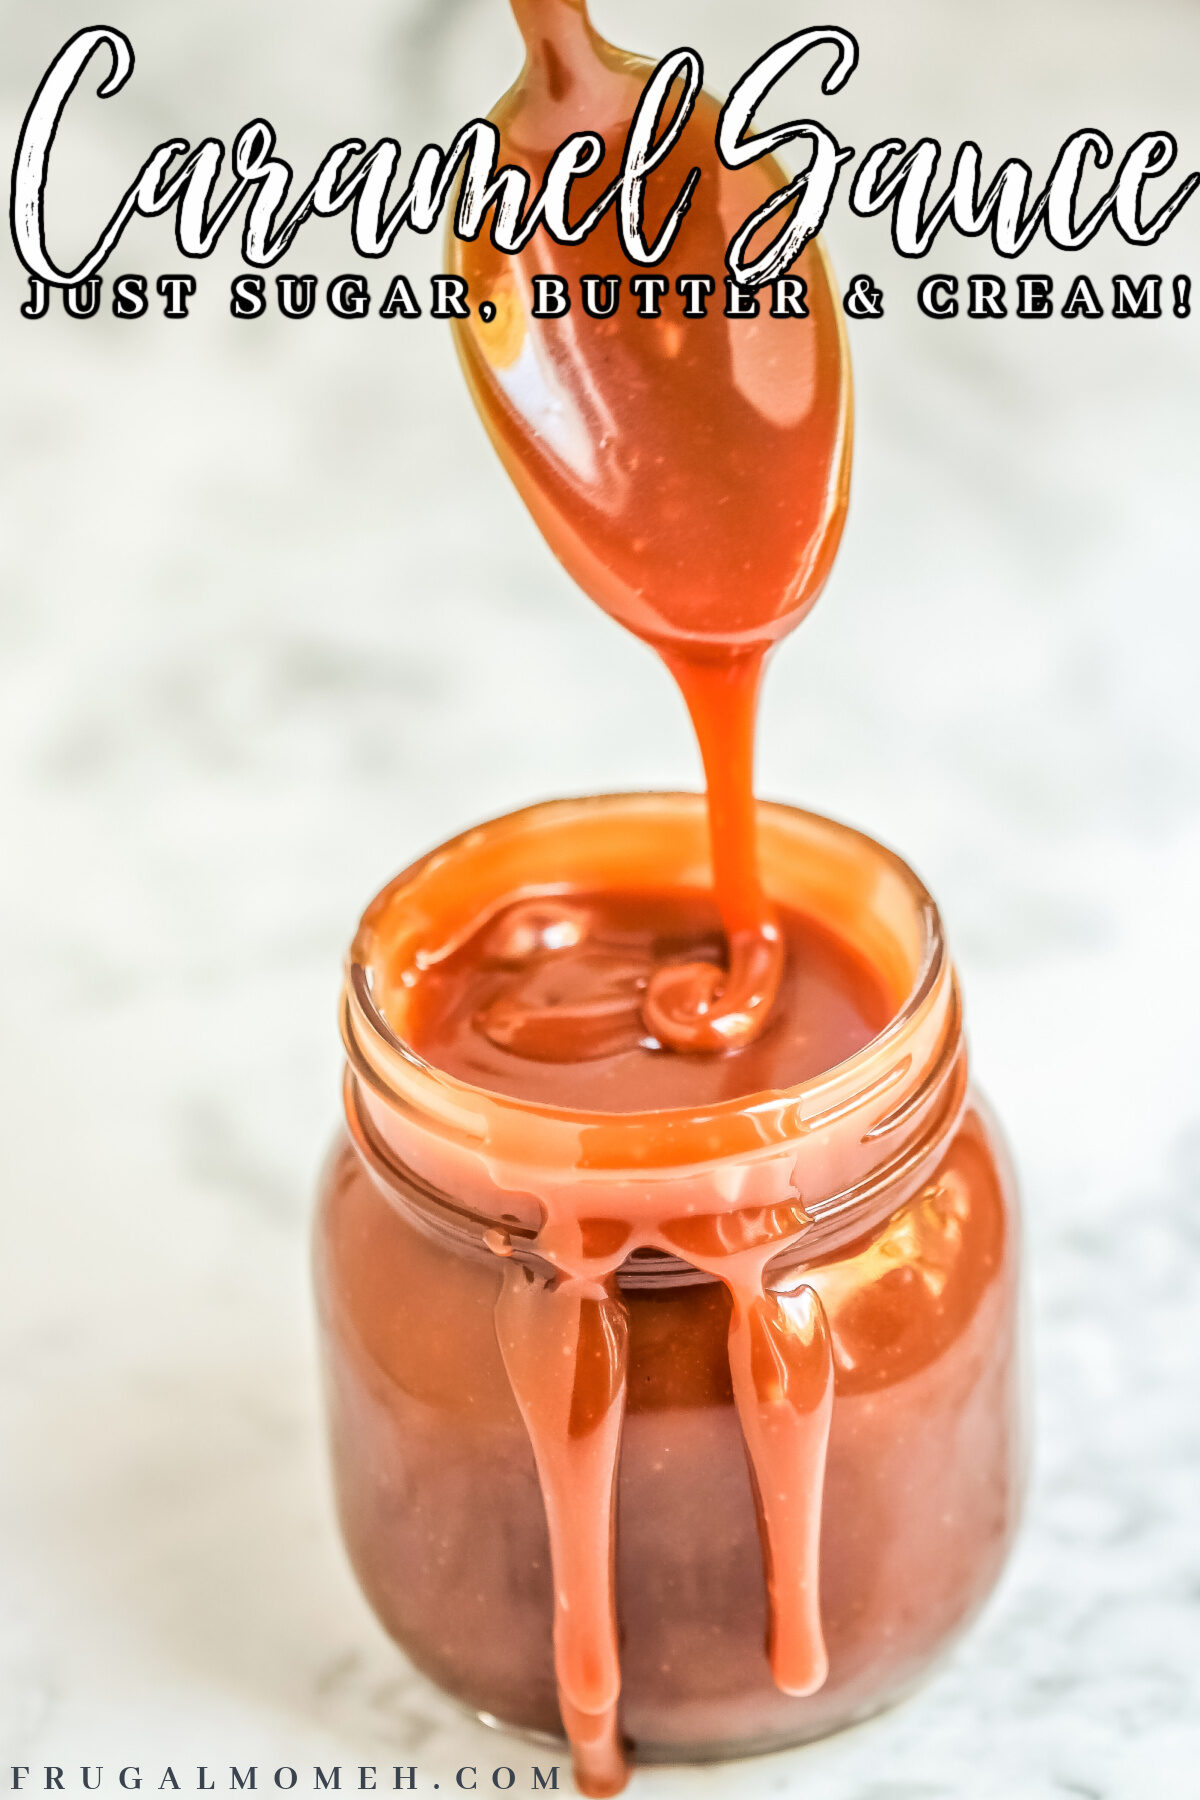 This Easy Homemade Caramel Sauce Recipe uses just a handful of ingredients & the wet caramelization method to make perfect creamy caramel.